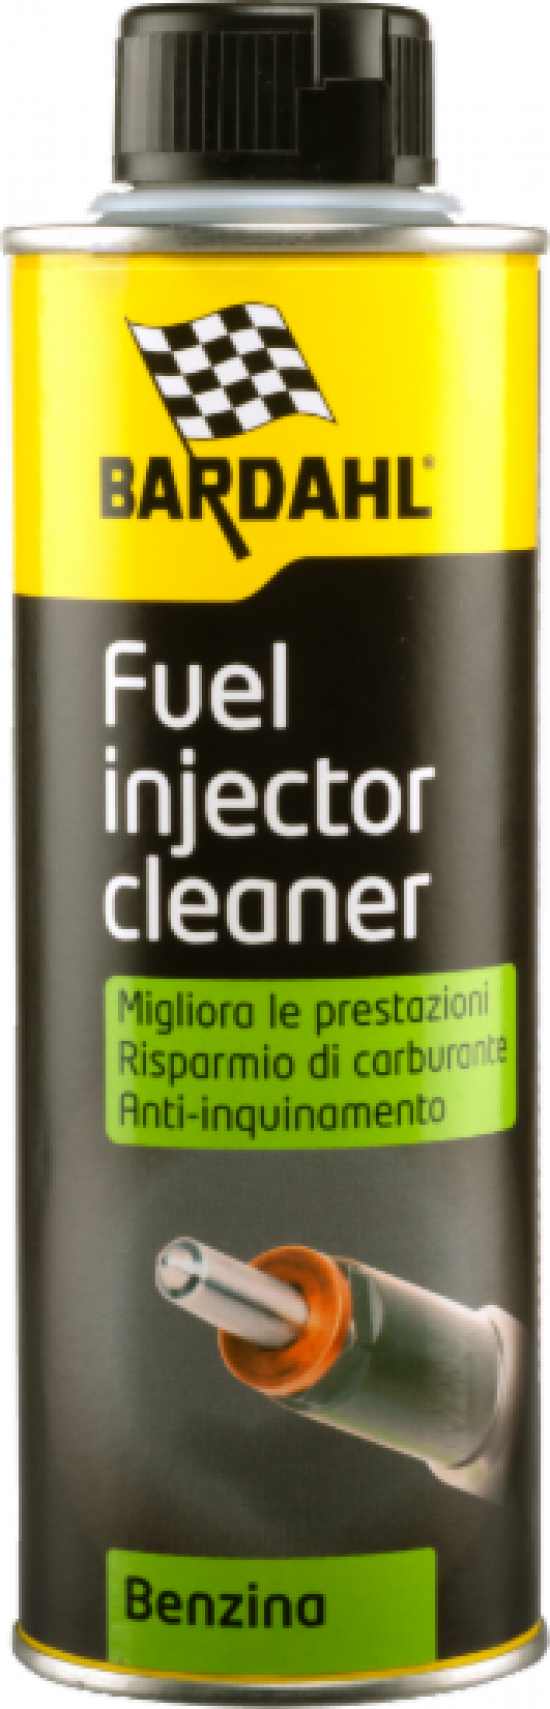 Bardahl FUEL INJECTOR CLEANER